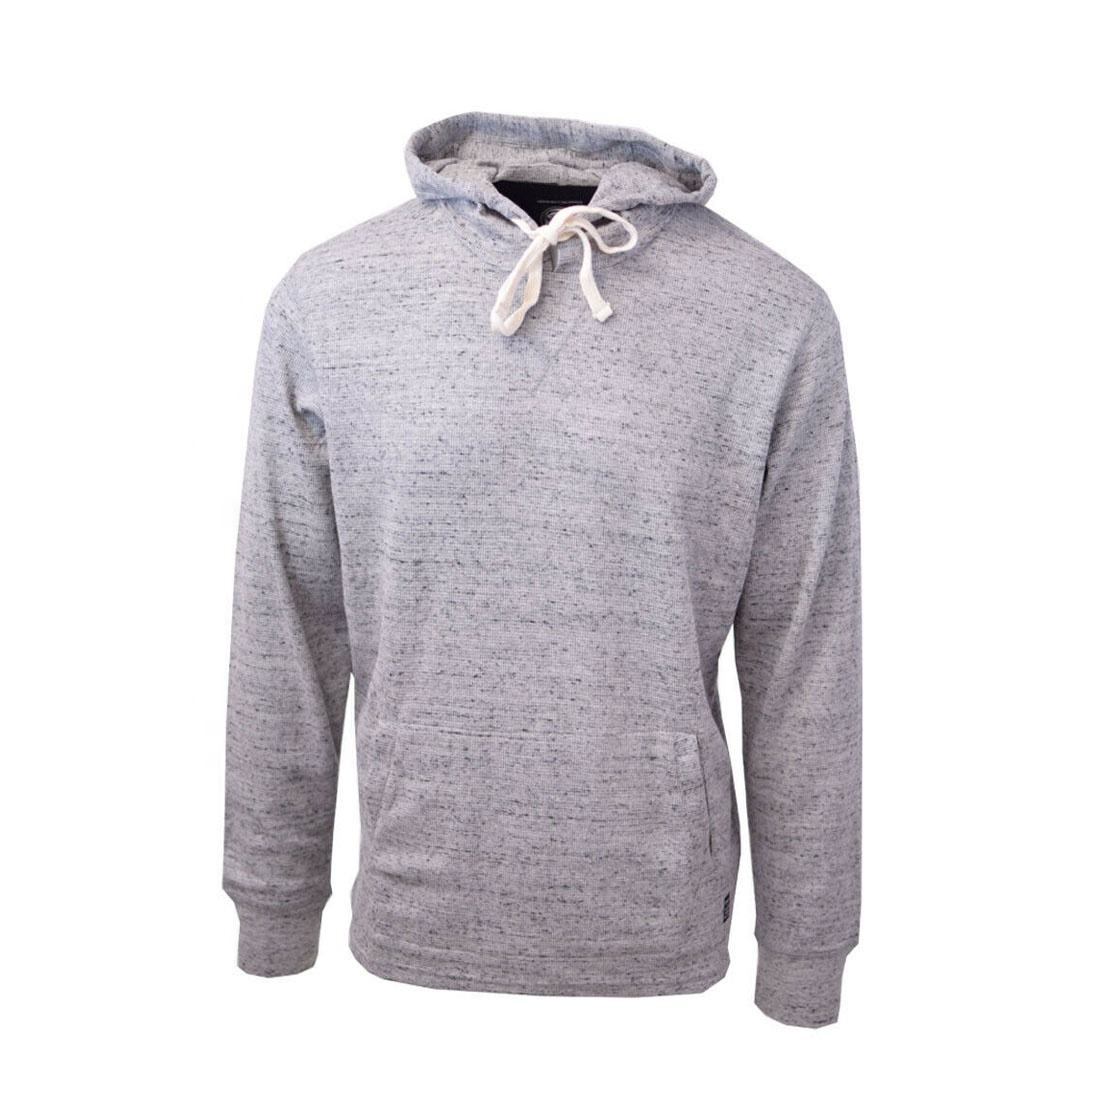 High Quality Cotton Fleece Heavy GSM Mens Clothing Custom Apparel, men clothing winter collection top sold hoodie